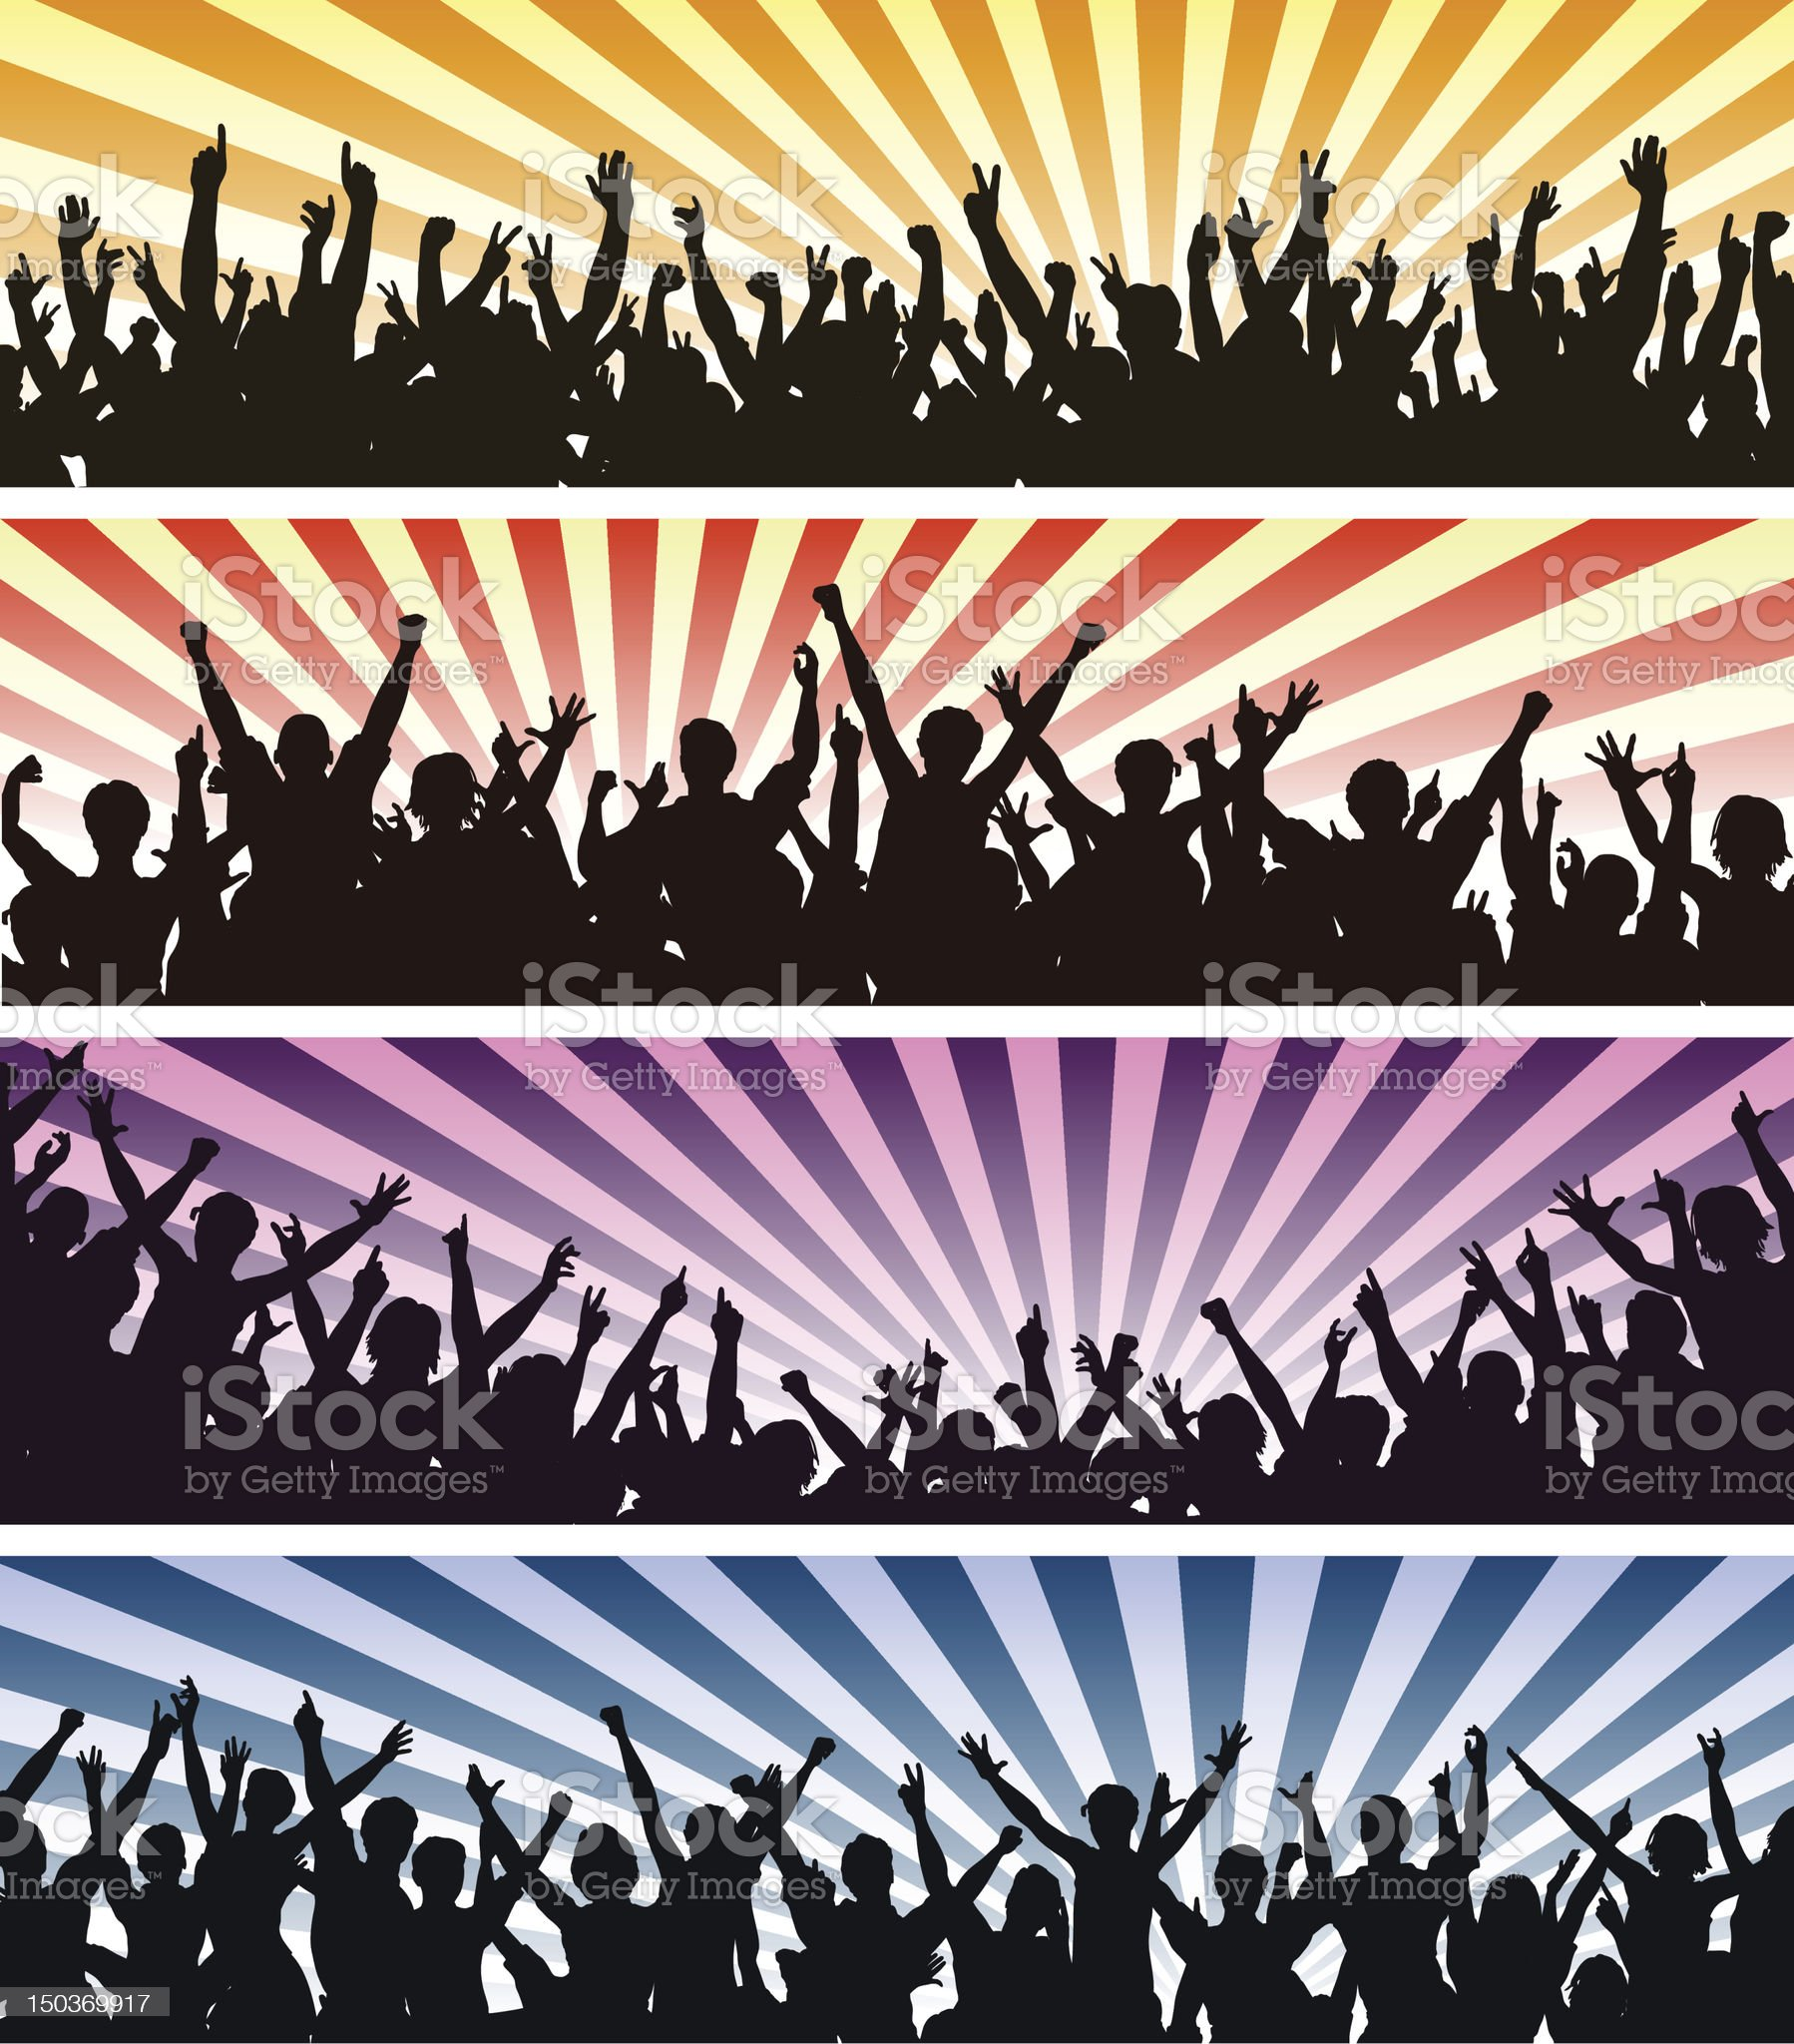 Concert crowds royalty-free stock vector art